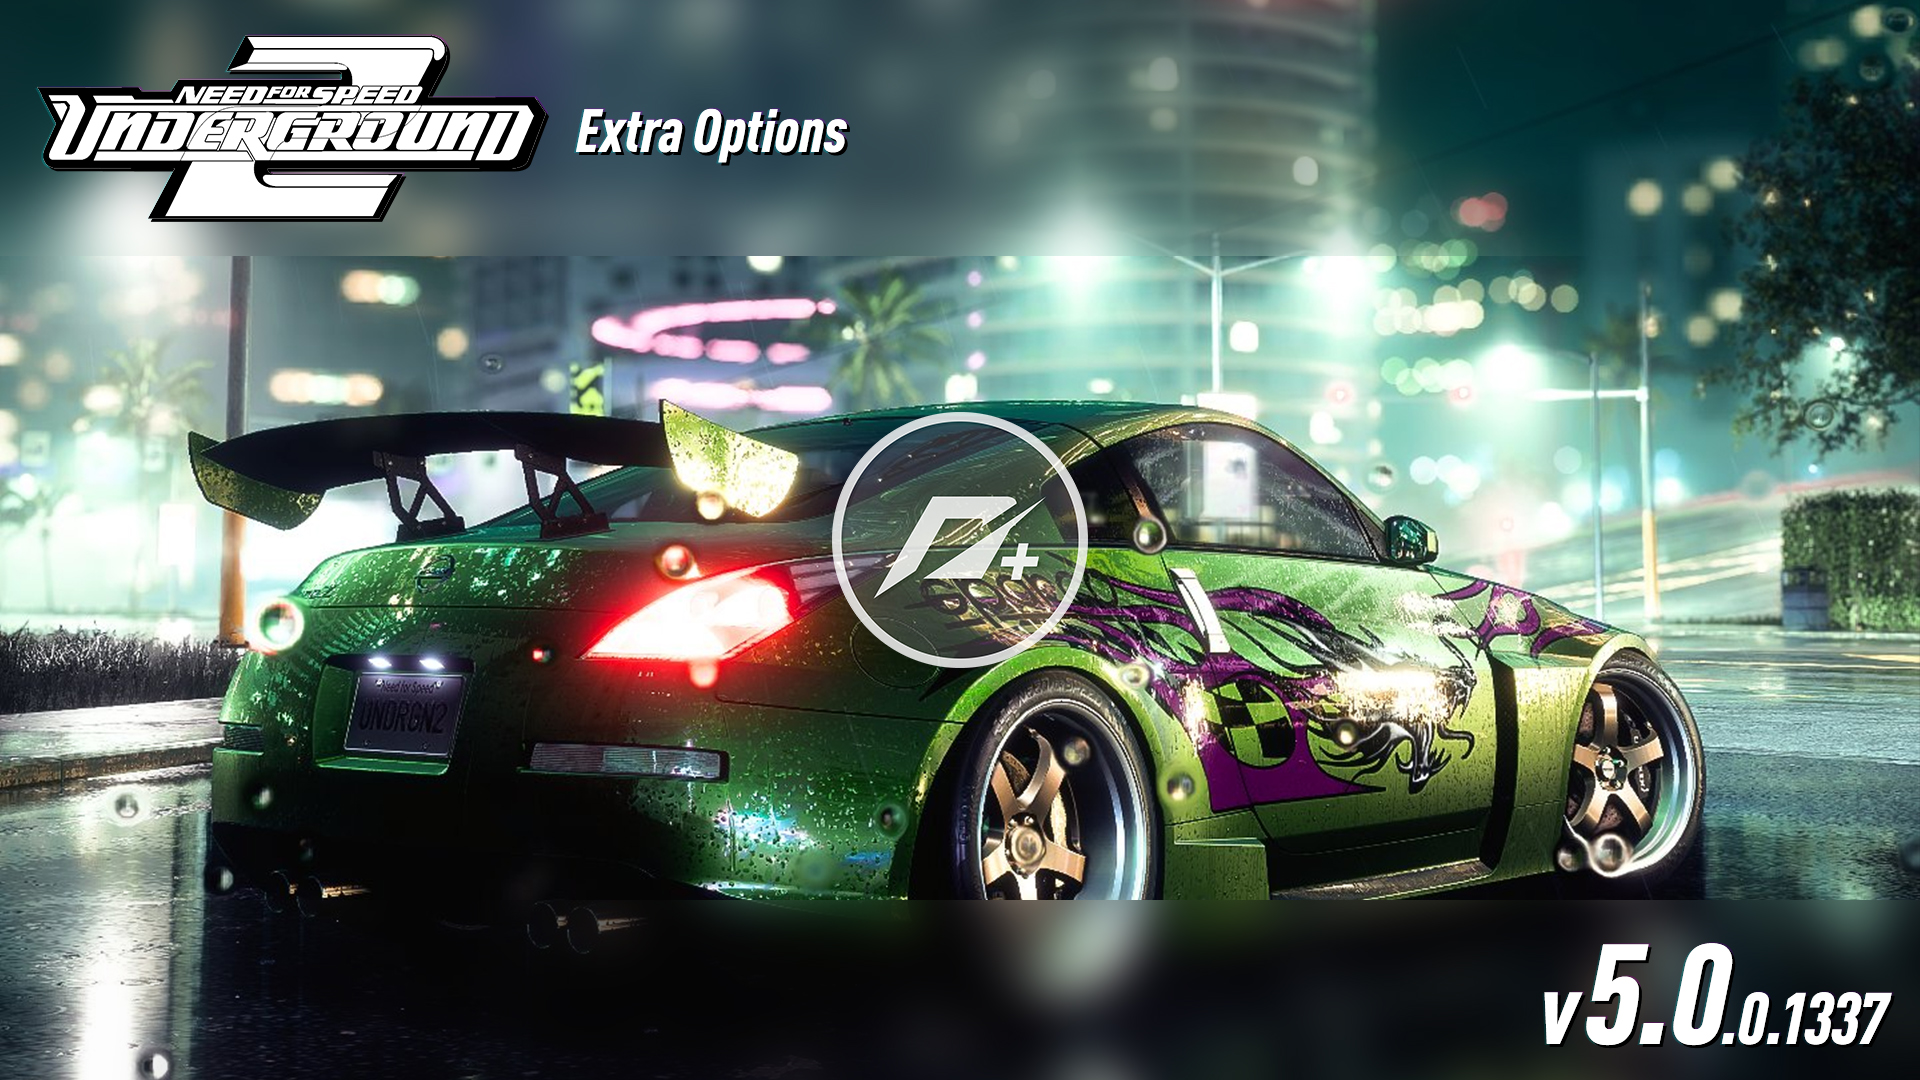 Nfsmods Nfsu2 Extra Options